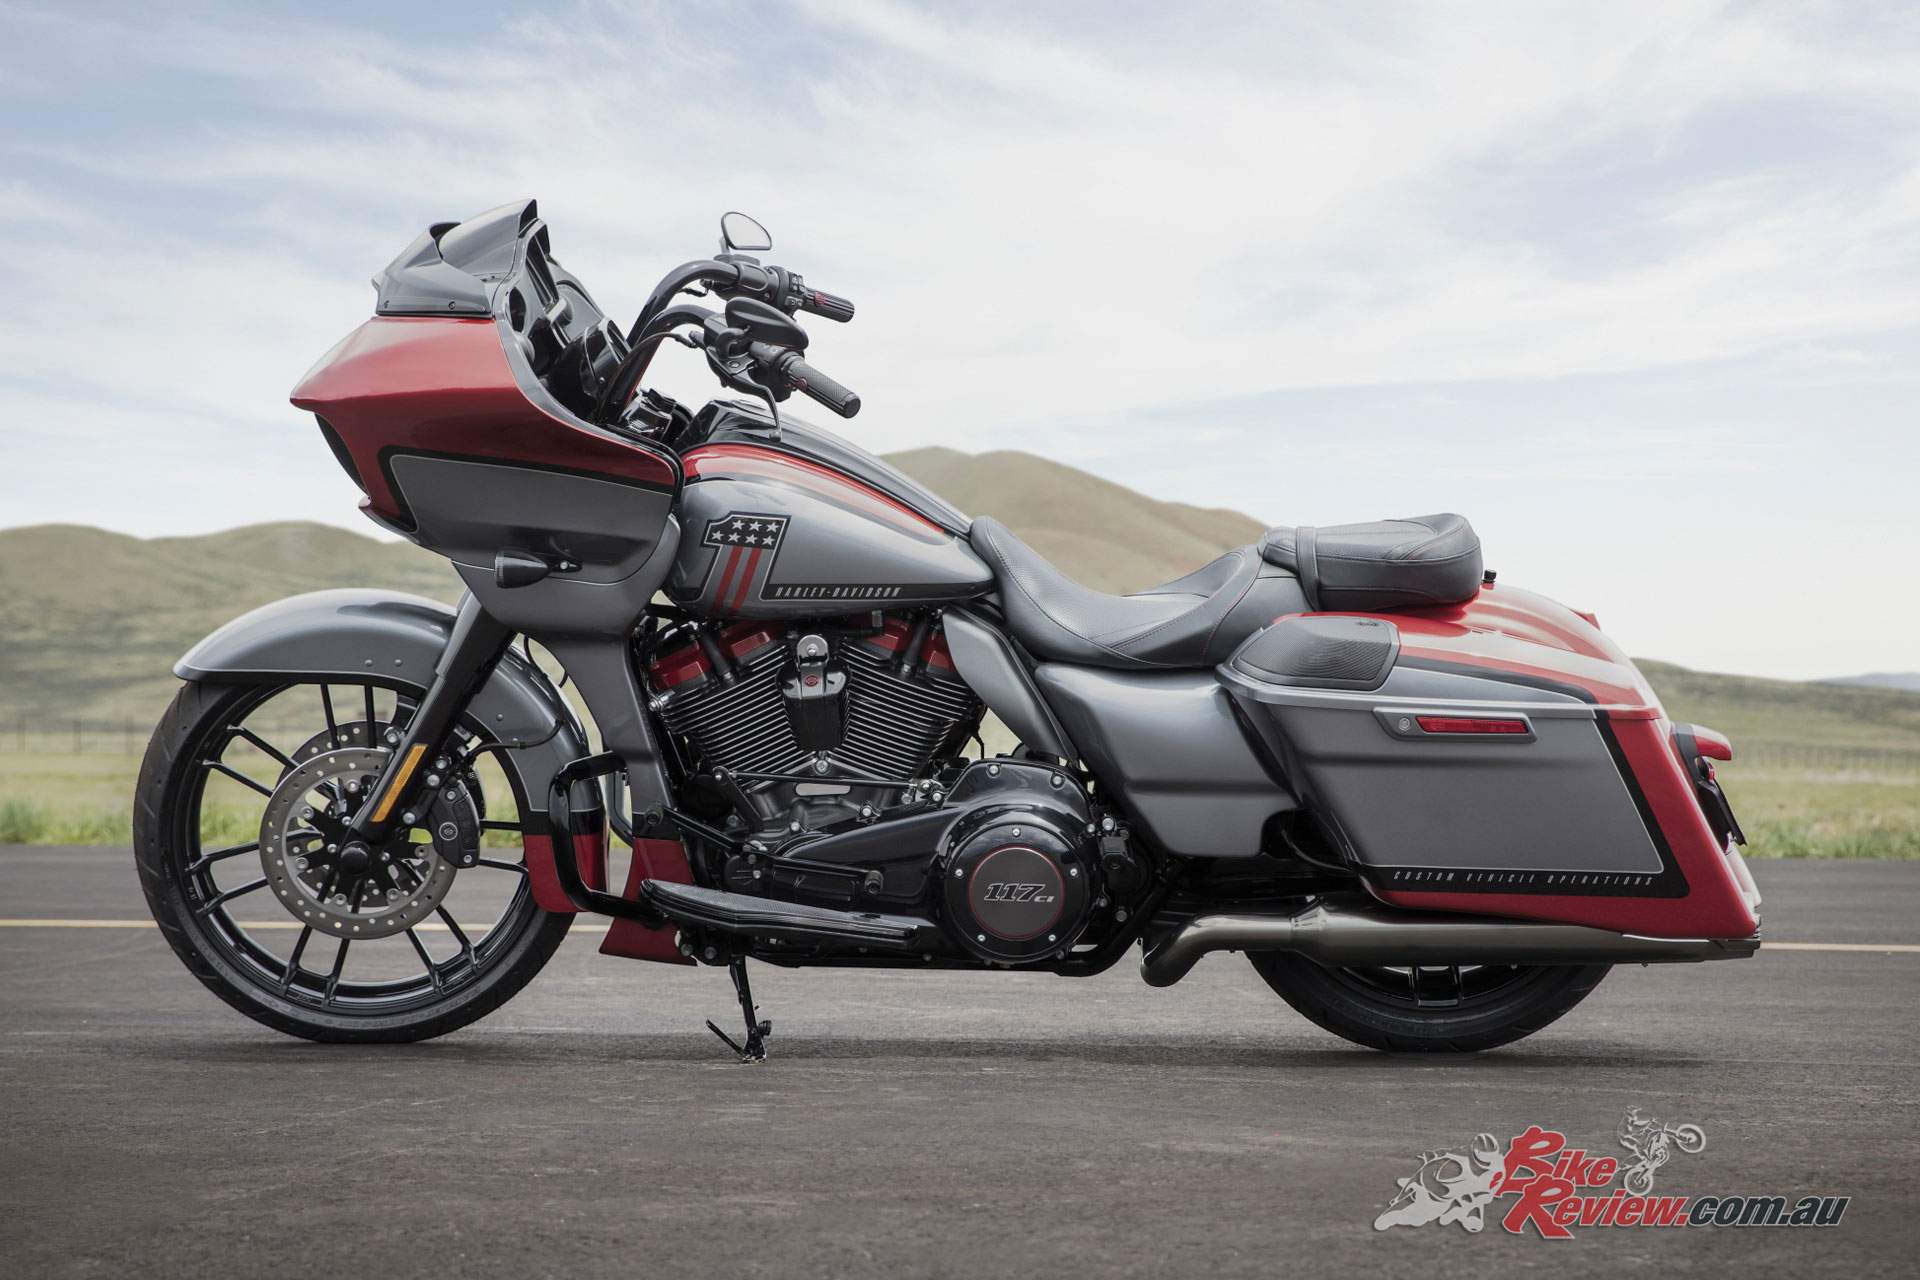 New Models 2019 Harley Davidson Fxdr 114 Review: Harley-Davidson Announce Three New 2019 CVO Models